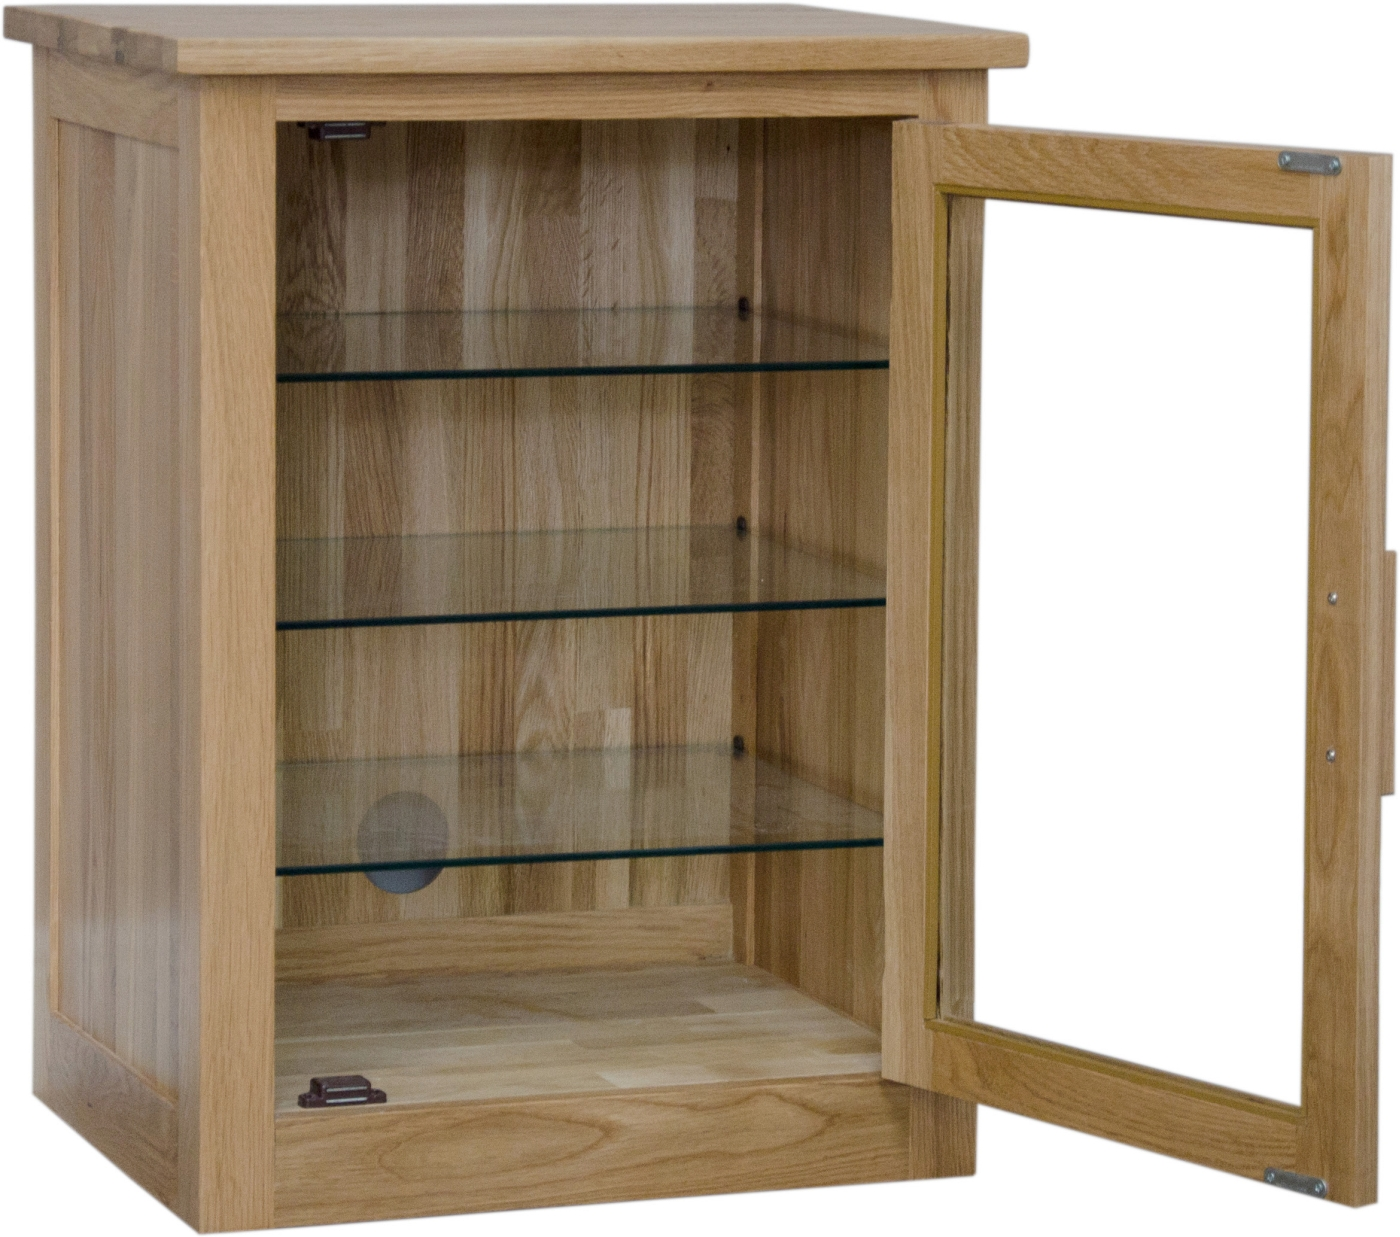 Small Glass Front Cabinet: Arden Solid Oak Furniture Hi-fi Stereo Storage Cabinet